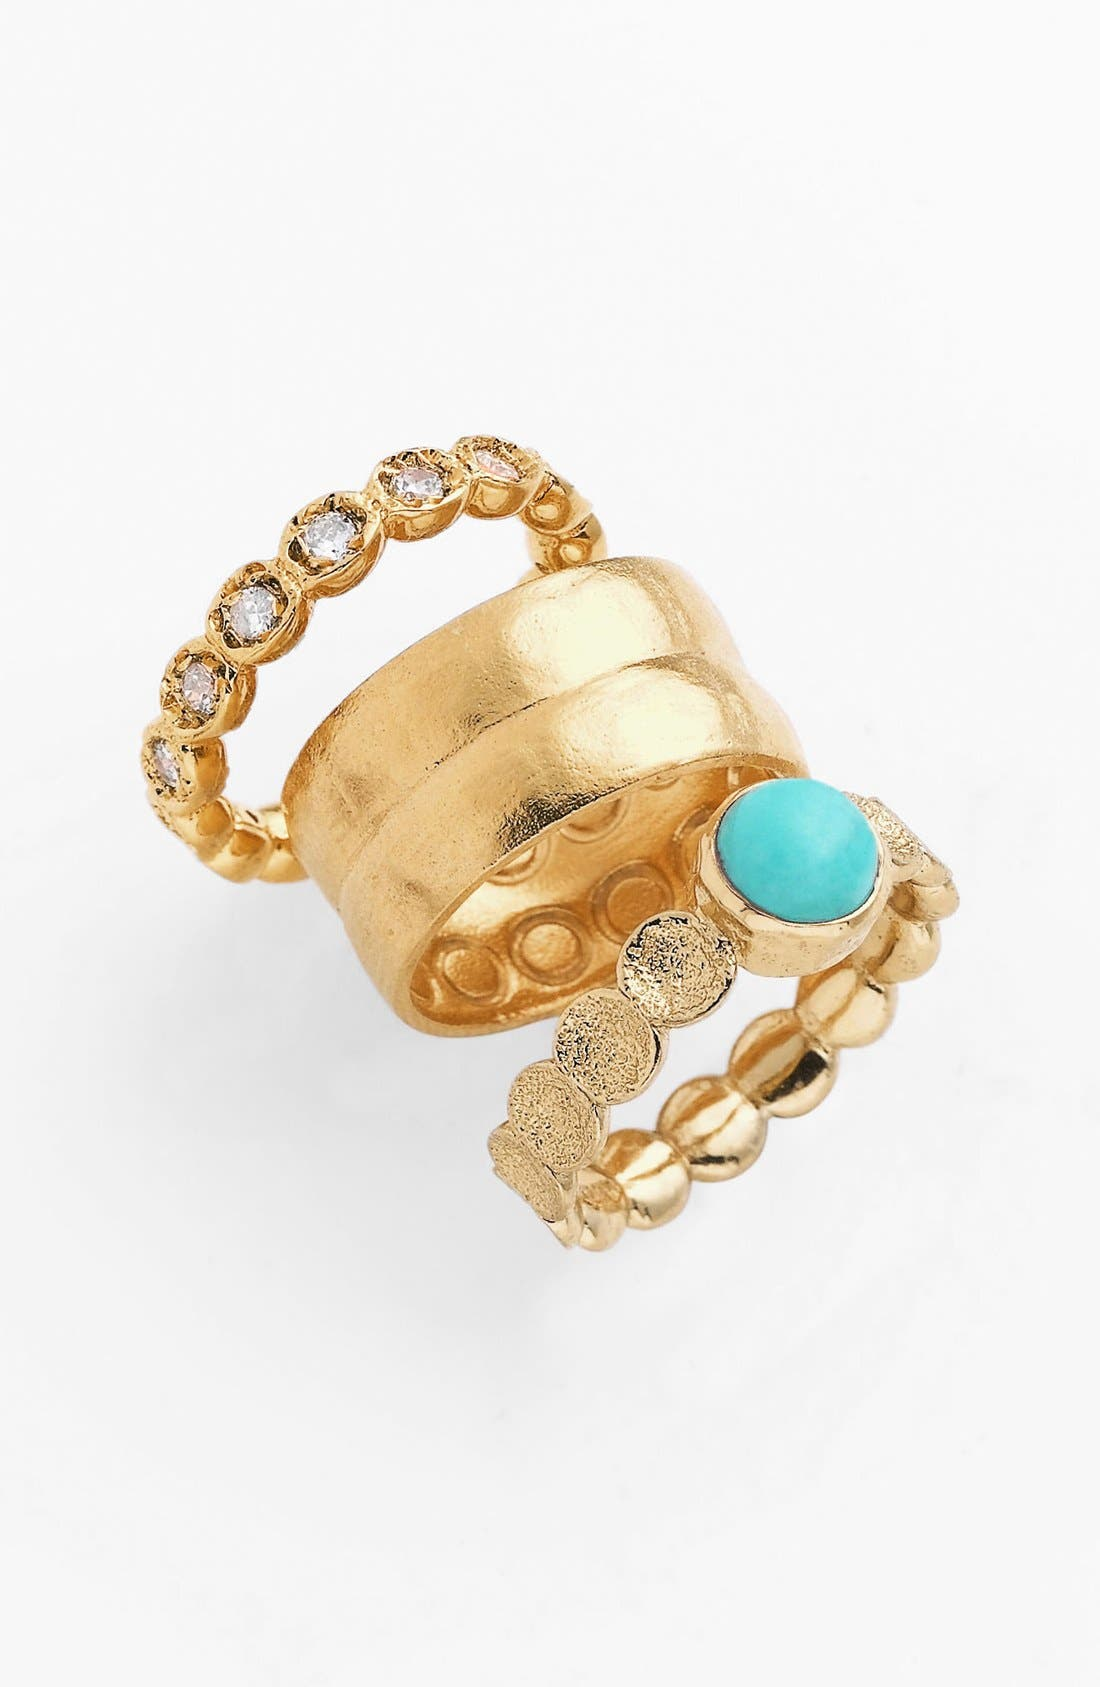 Main Image - Melinda Maria 'Capulet' Stackable Rings (Set of 3) (Nordstrom Exclusive)